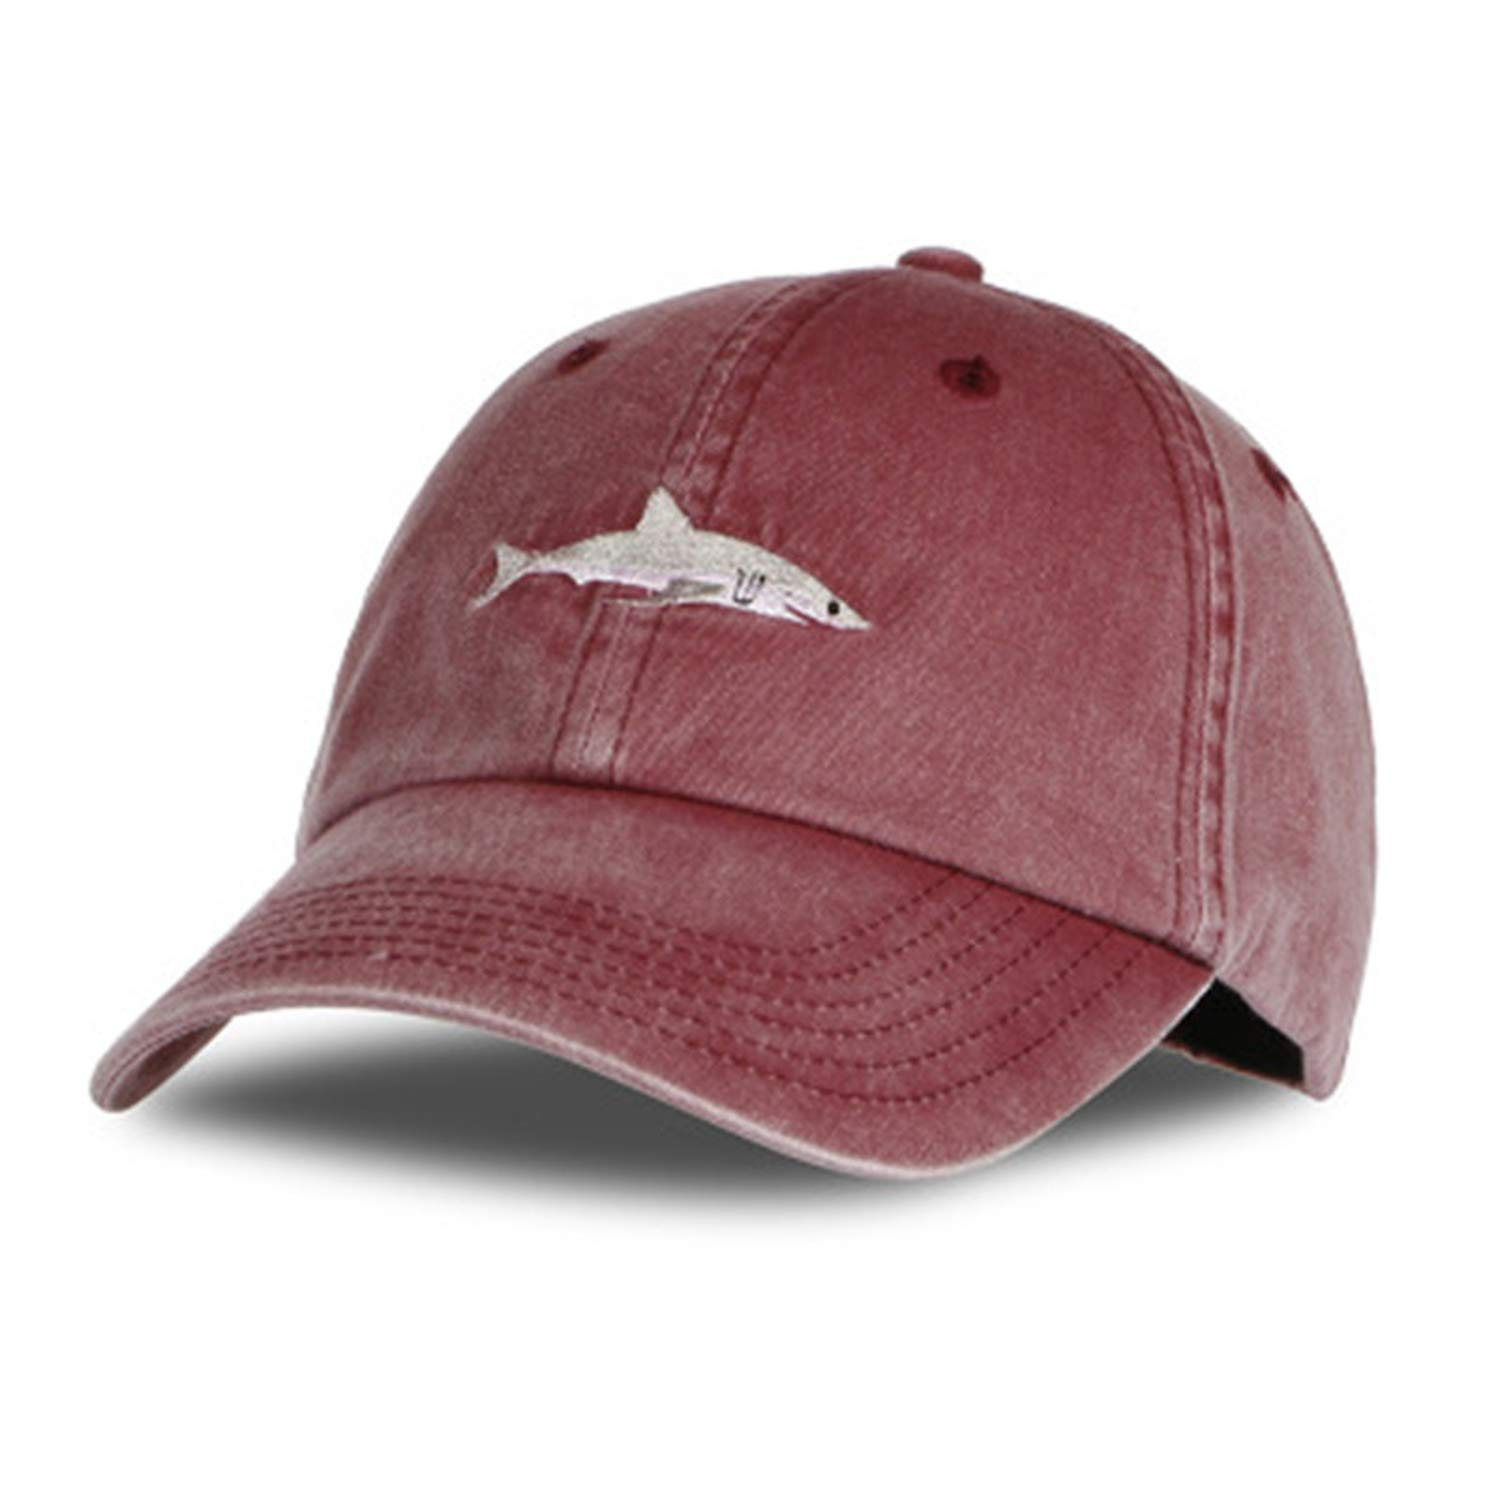 Cotton Washed Baseball caps Men and Women Hats Shark Embroidery Popular Baseball Hats